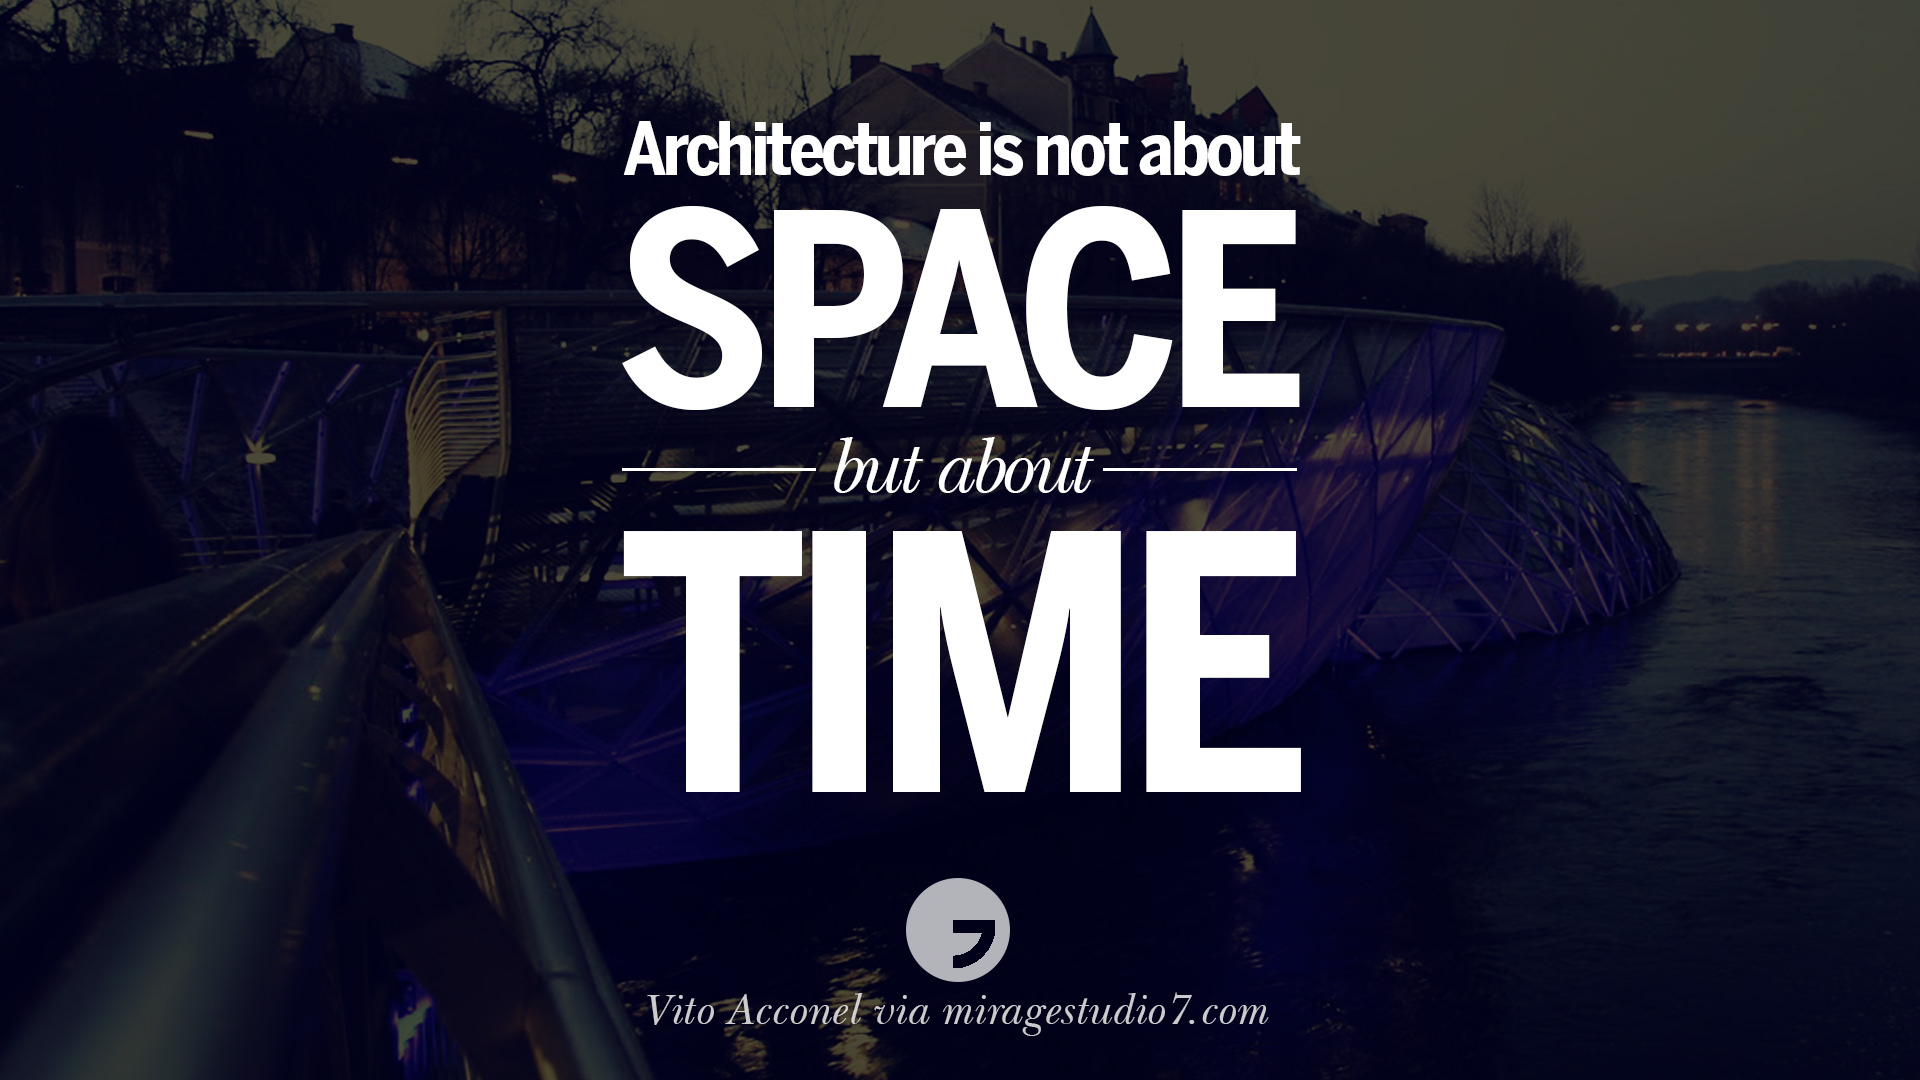 Minimalist Quote Wallpaper 28 Inspirational Architecture Quotes By Famous Architects